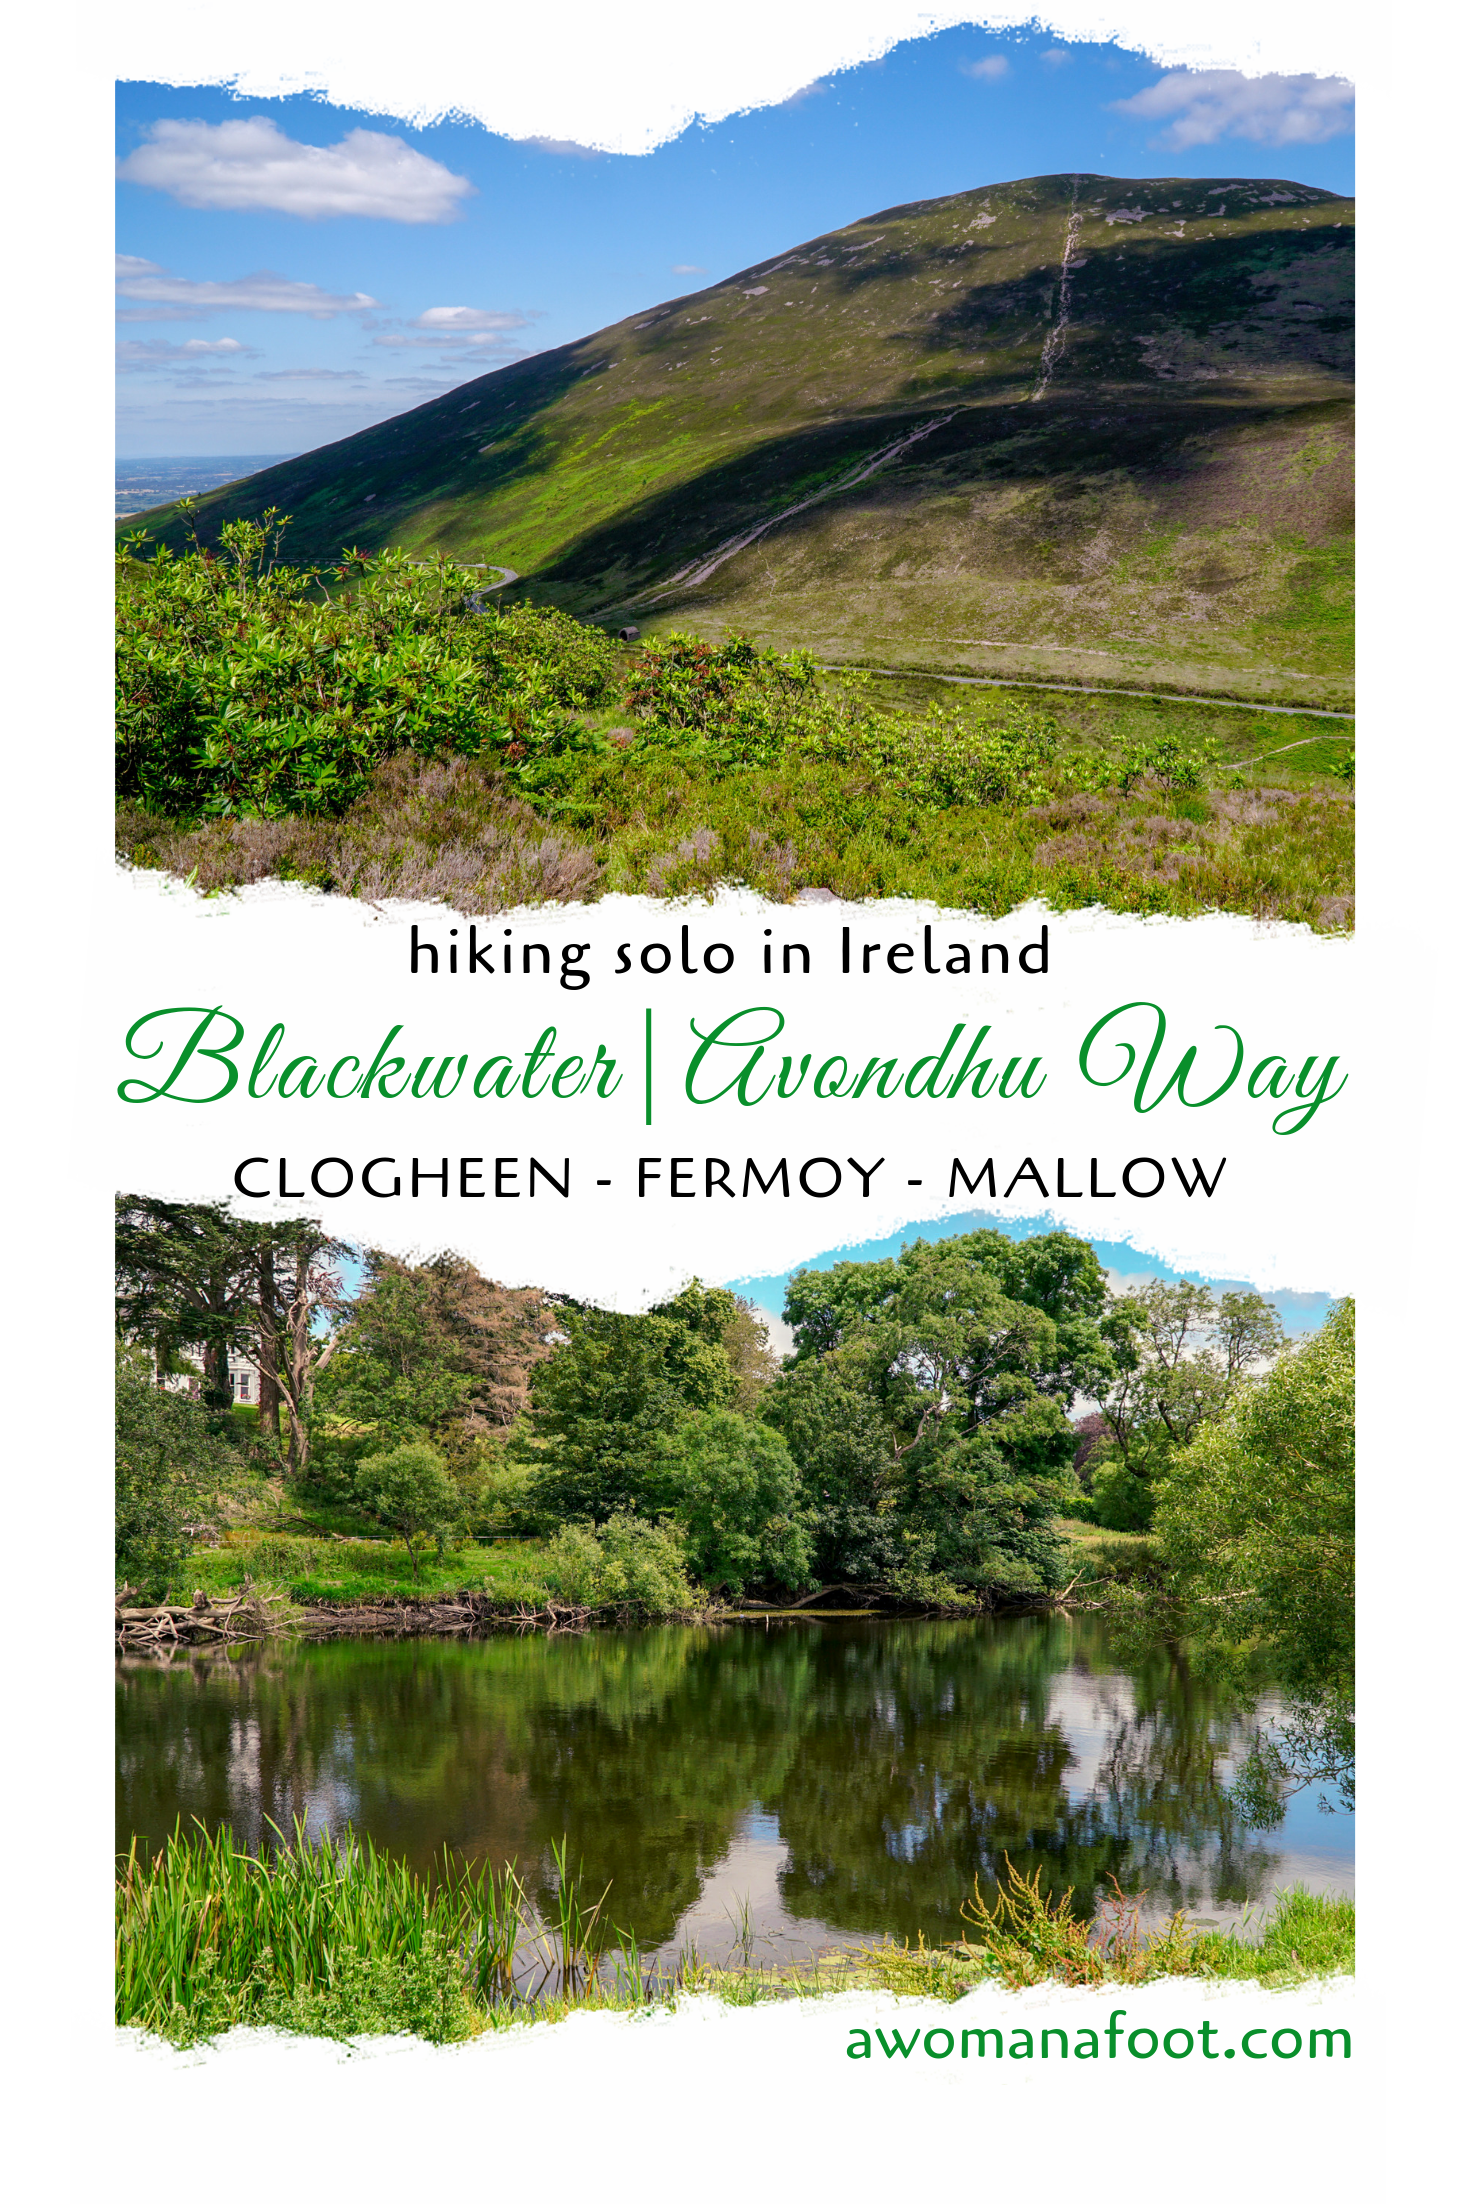 Hiking Solo in Ireland: a fantastic start to a great Irish adventure on the Blackwater/Avondhu Way in Cork @awomanafoot.com. | Hiking Trails in Ireland | Active holidays in Ireland | Clogheen -Killworth Fermoy - Ballyhooly - Mallow| Female hiking alone | Camping in Ireland | #Hiking #Ireland #HikingTrail #FemaleSoloHiker #Adventure #EuropeanTrails